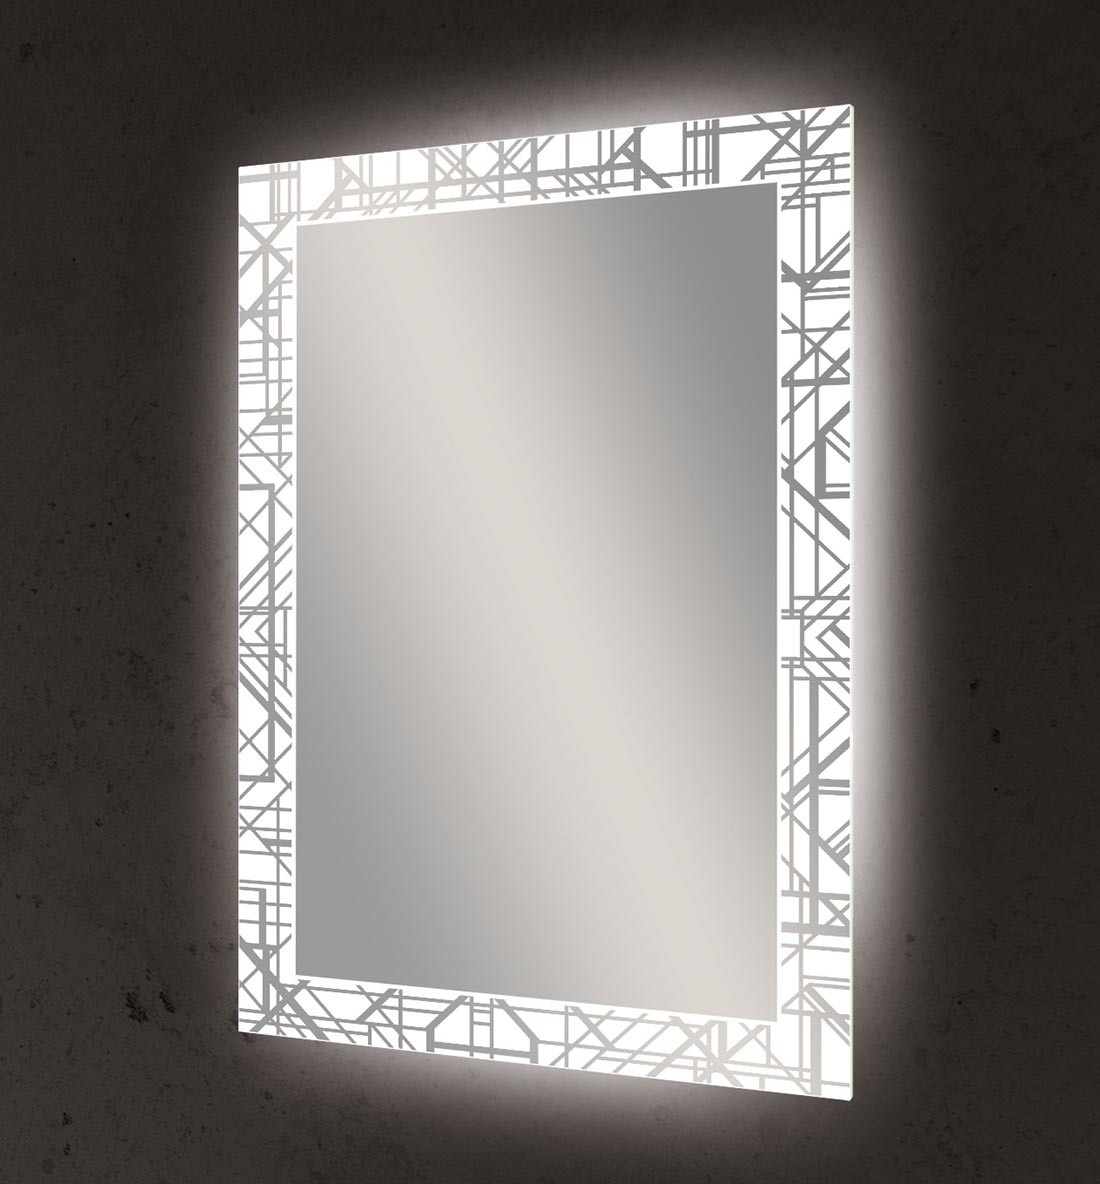 Seura's Deconstructed Deco lighted mirror has a glowing geometric pattern around all four edges.